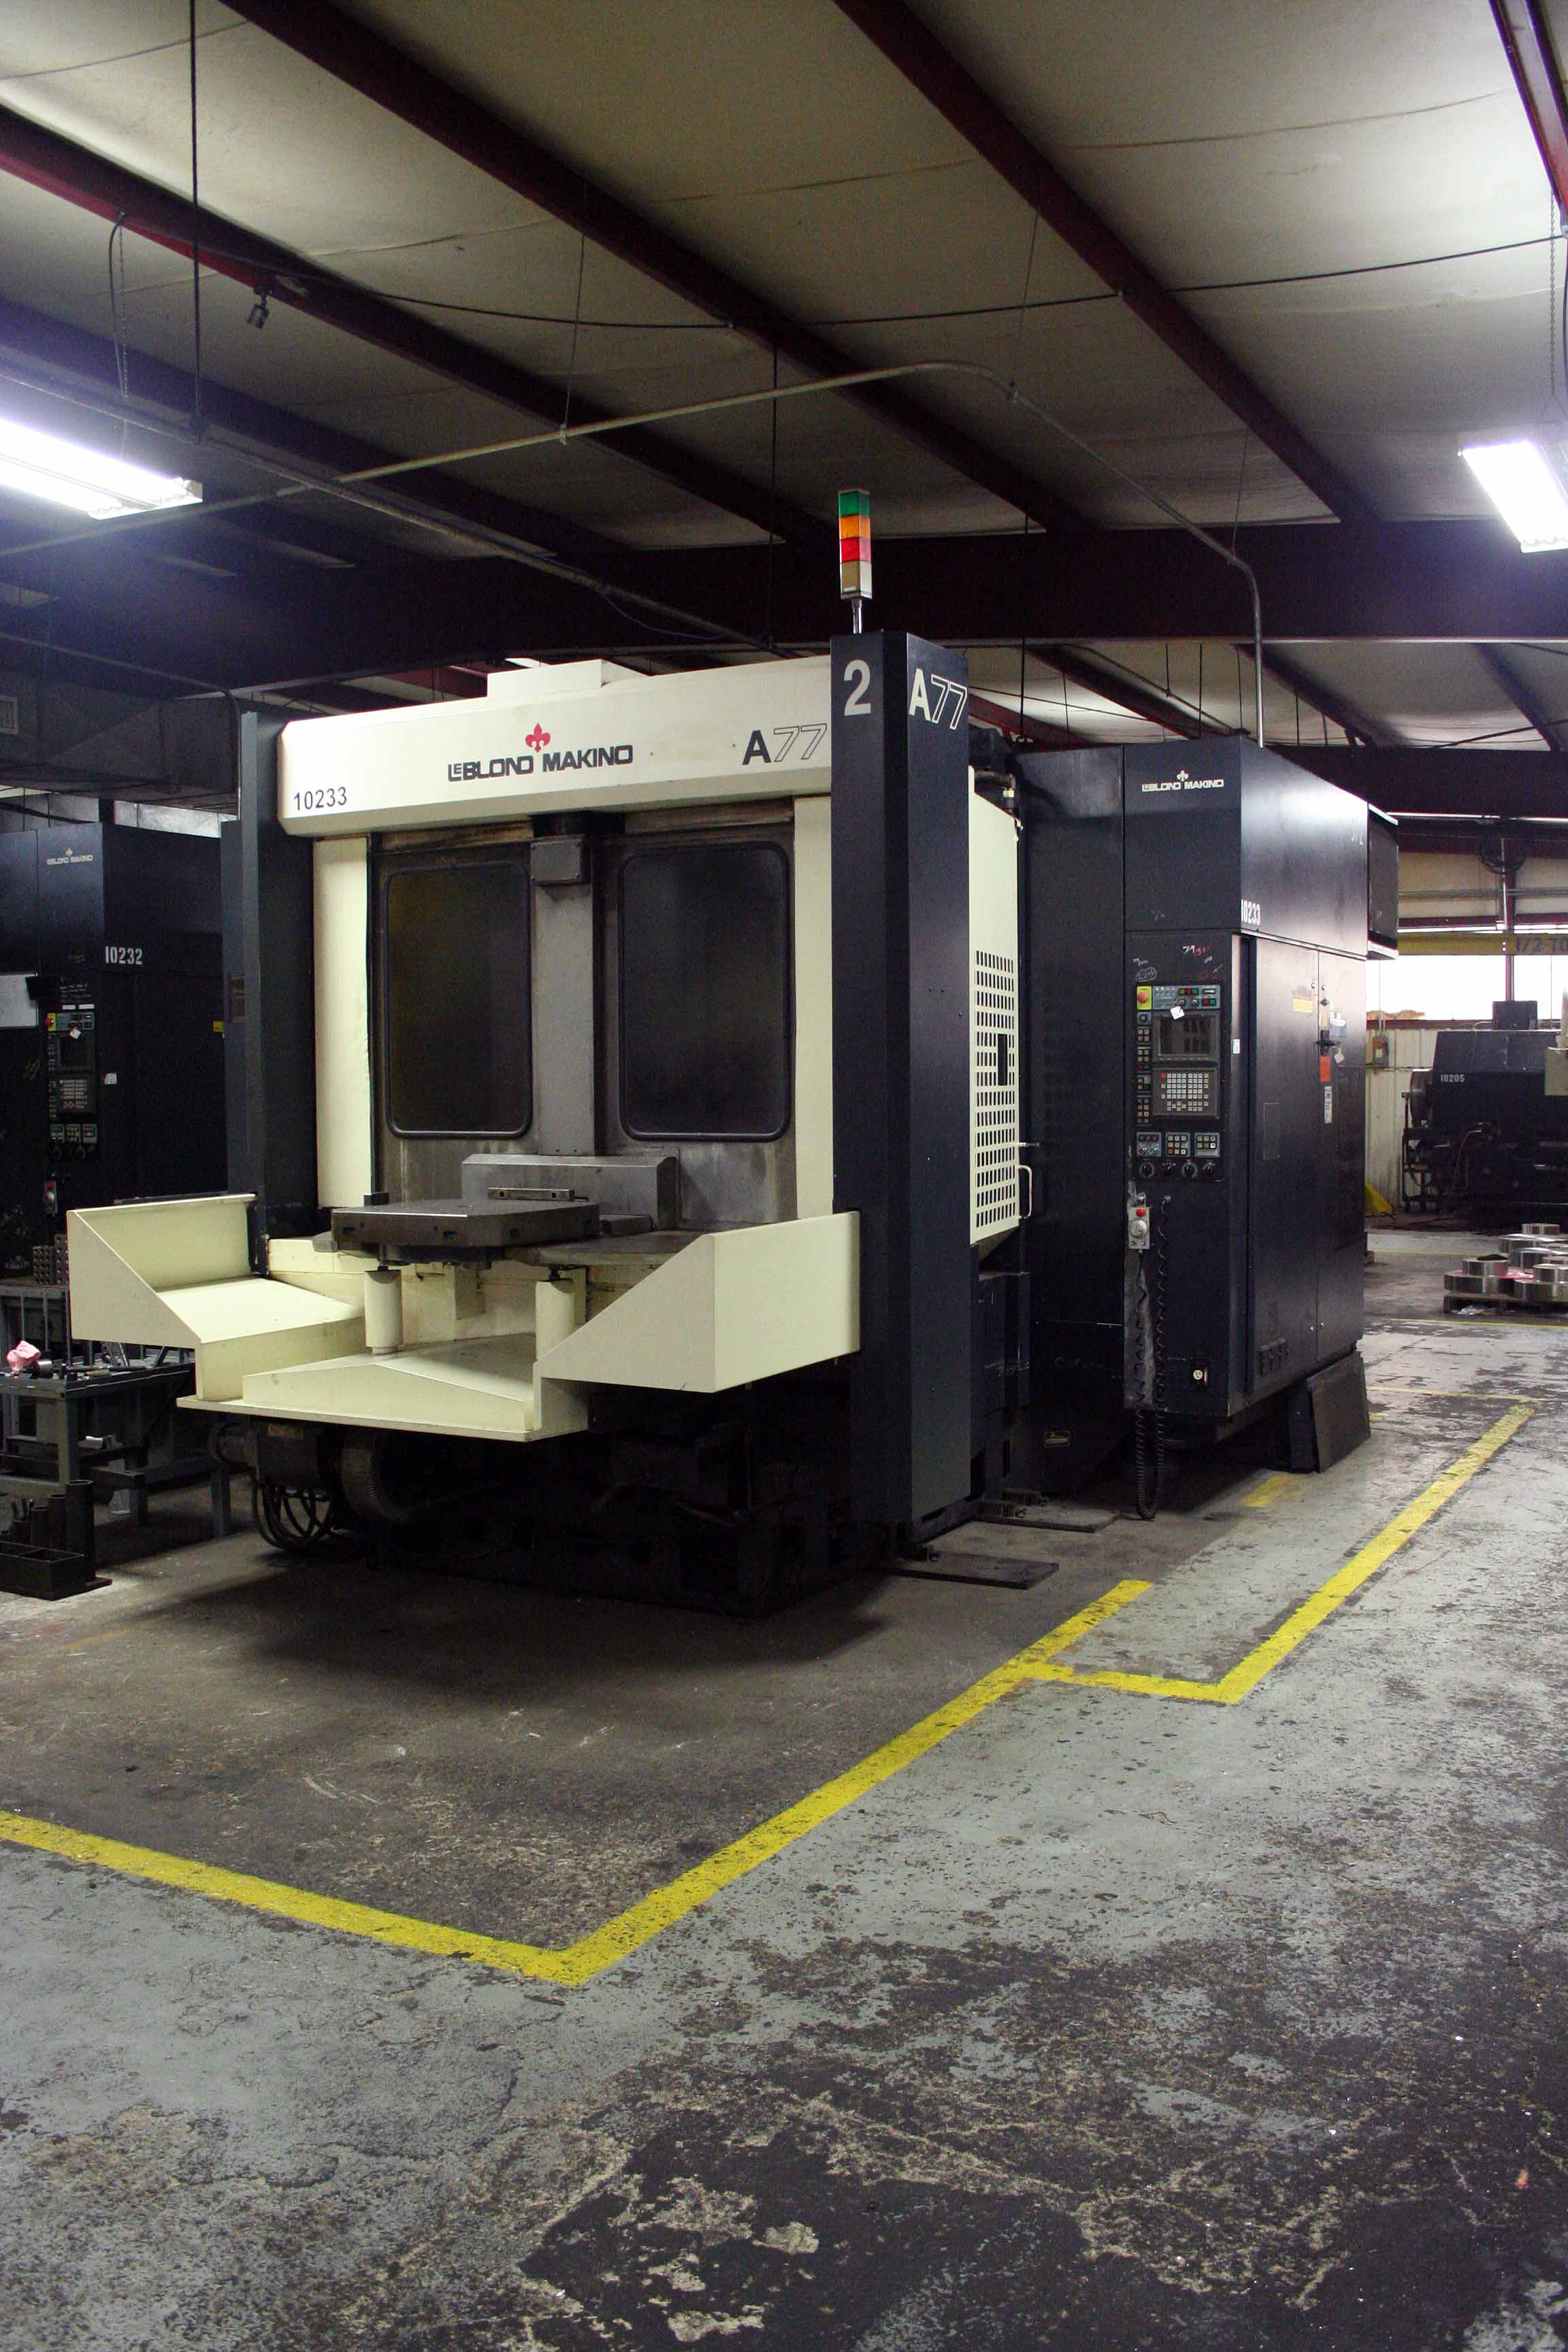 Lot 5 - CNC HORIZONTAL MACHINING CENTER, LEBLOND MAKINO MDL. A77, new 1995, Fanuc 16MB Pro CNC control, 24.